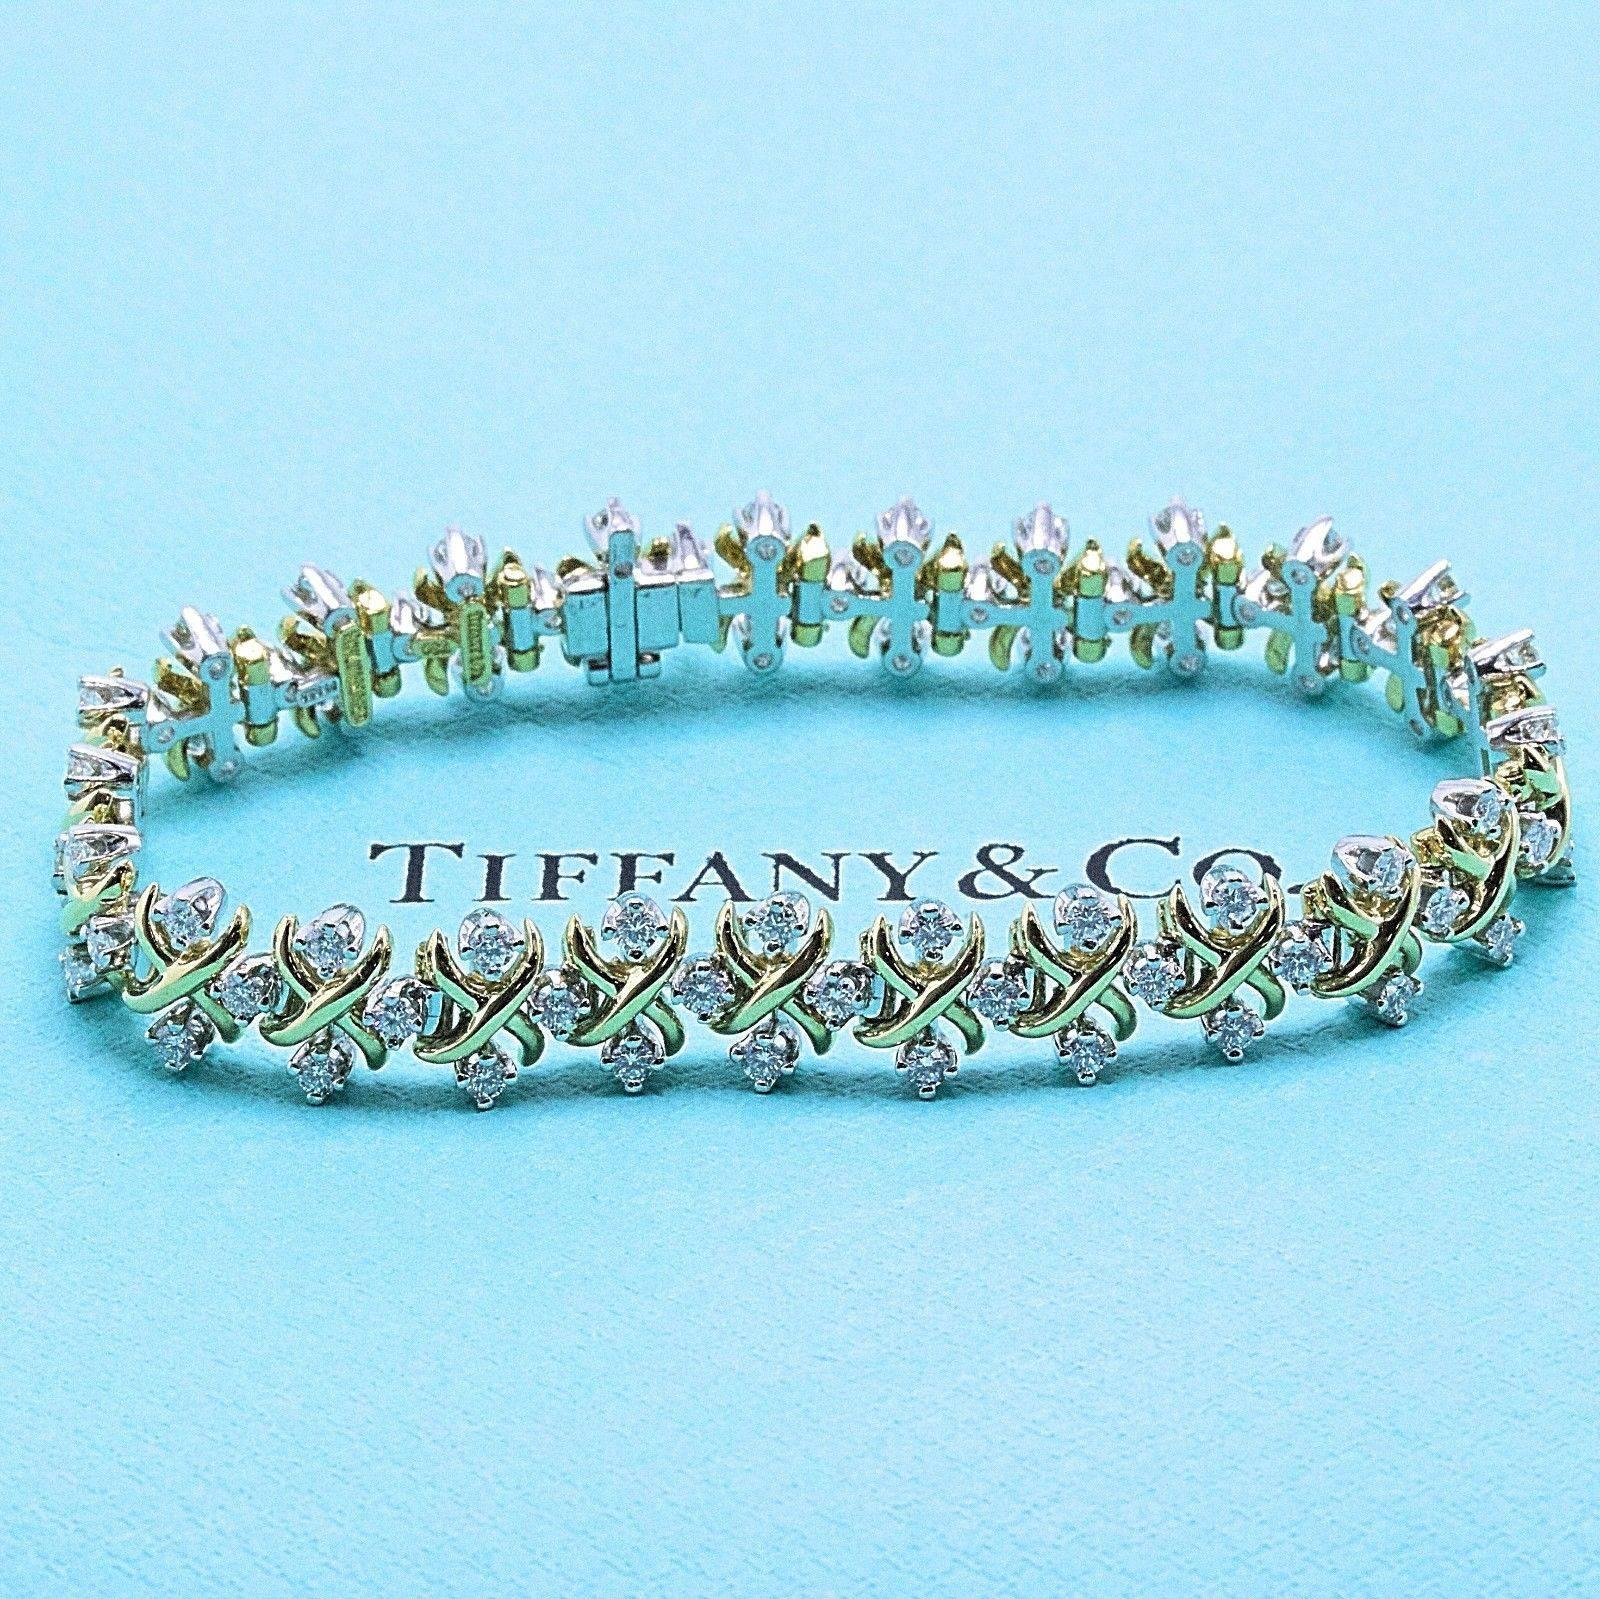 9d76b5d2f Tiffany and Co Jean Schlumberger Lynn Diamond Bracelet 2.77 TCW 18kt YG  Platinum For Sale at 1stdibs